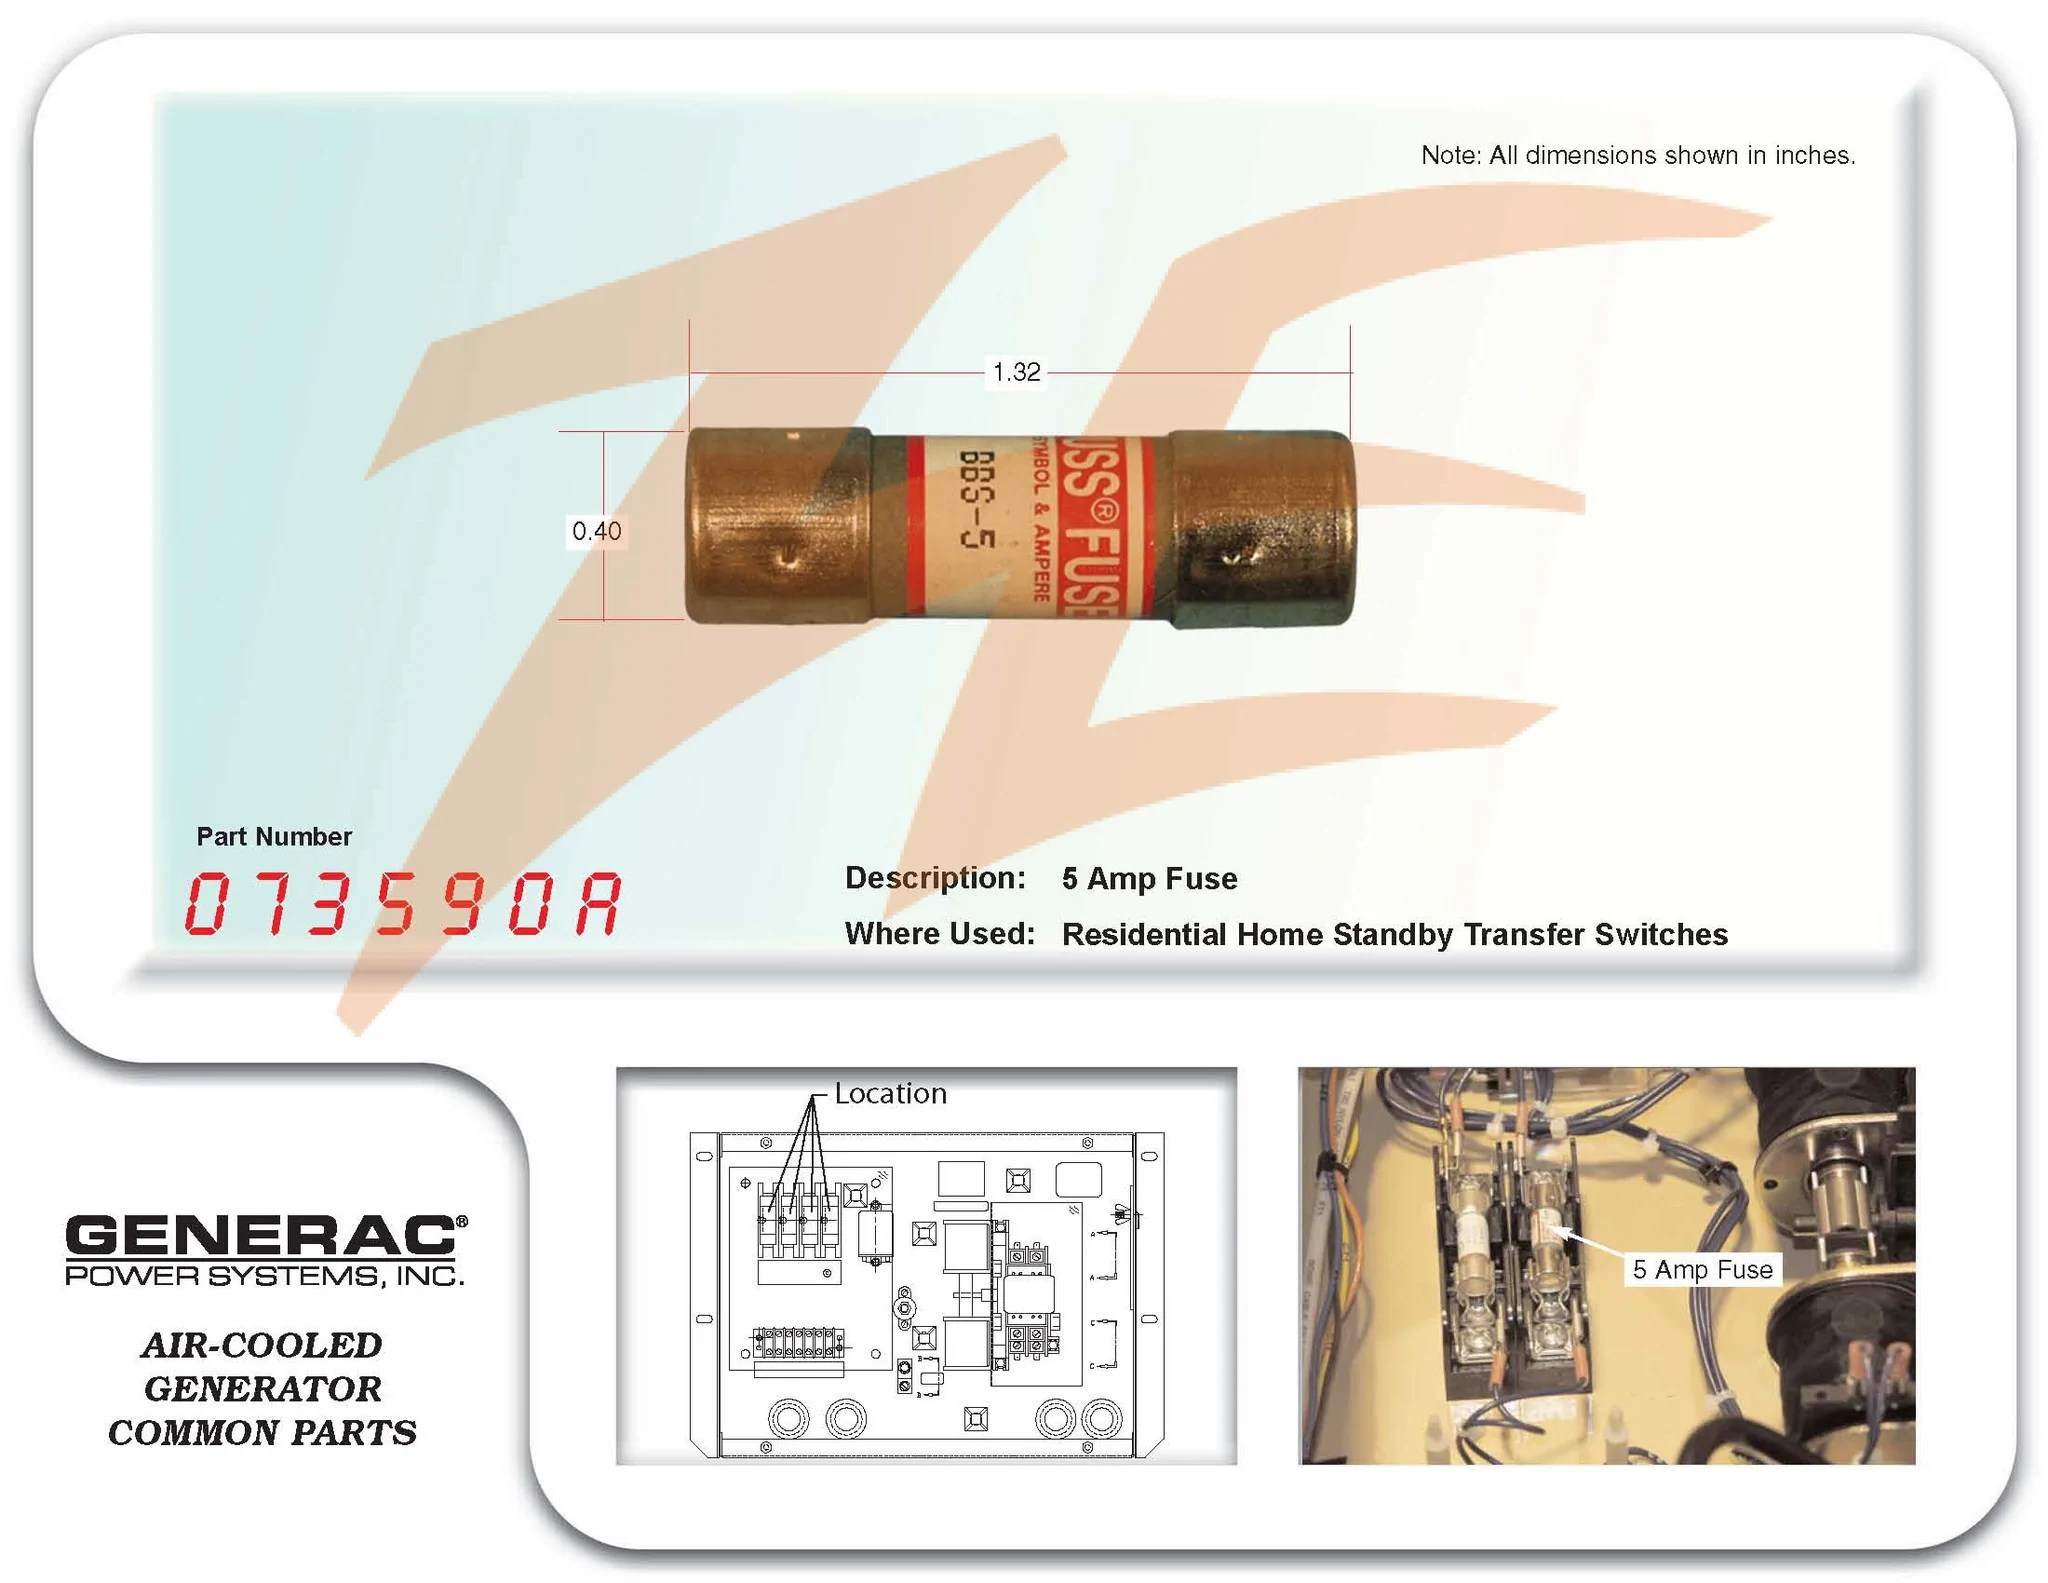 hight resolution of generac 073590a 5 amp buss fuse